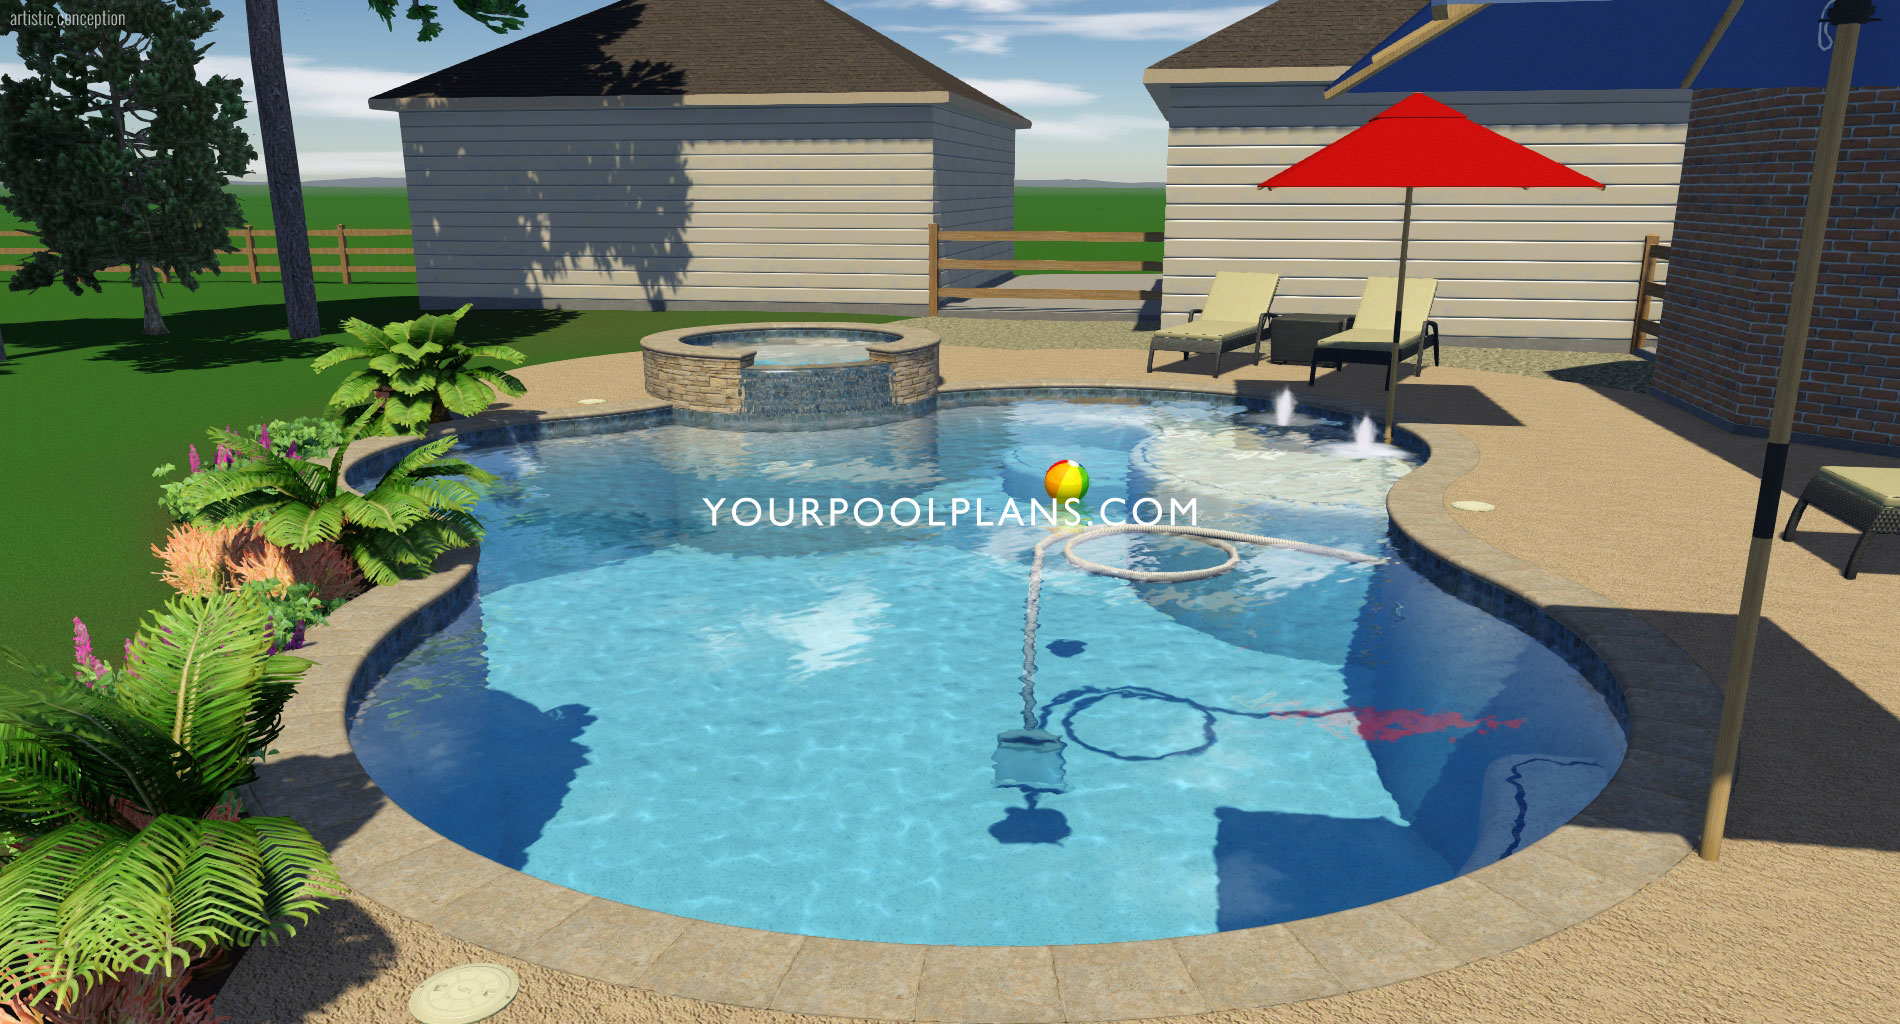 3D Swimming Pool Designs | Your Online Pool Design ...